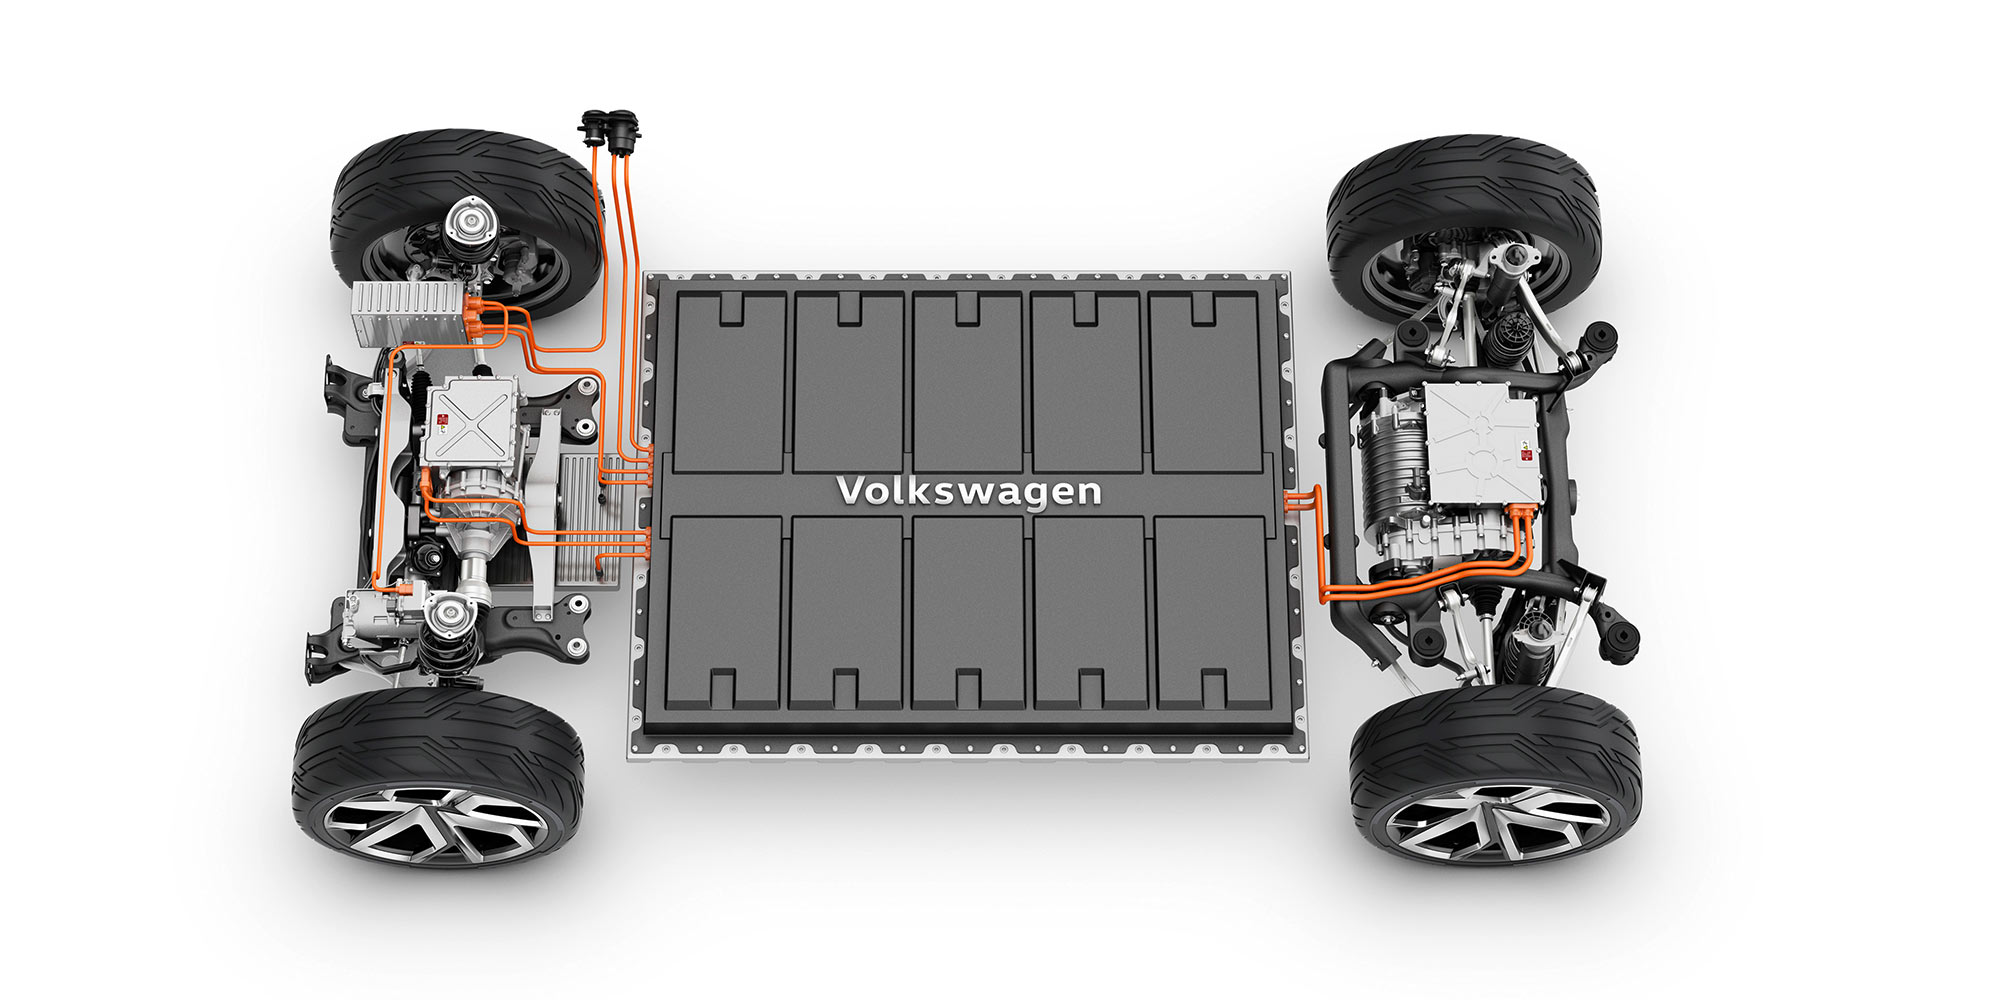 Ford's EVs will be distinct but use VW's underpinnings.